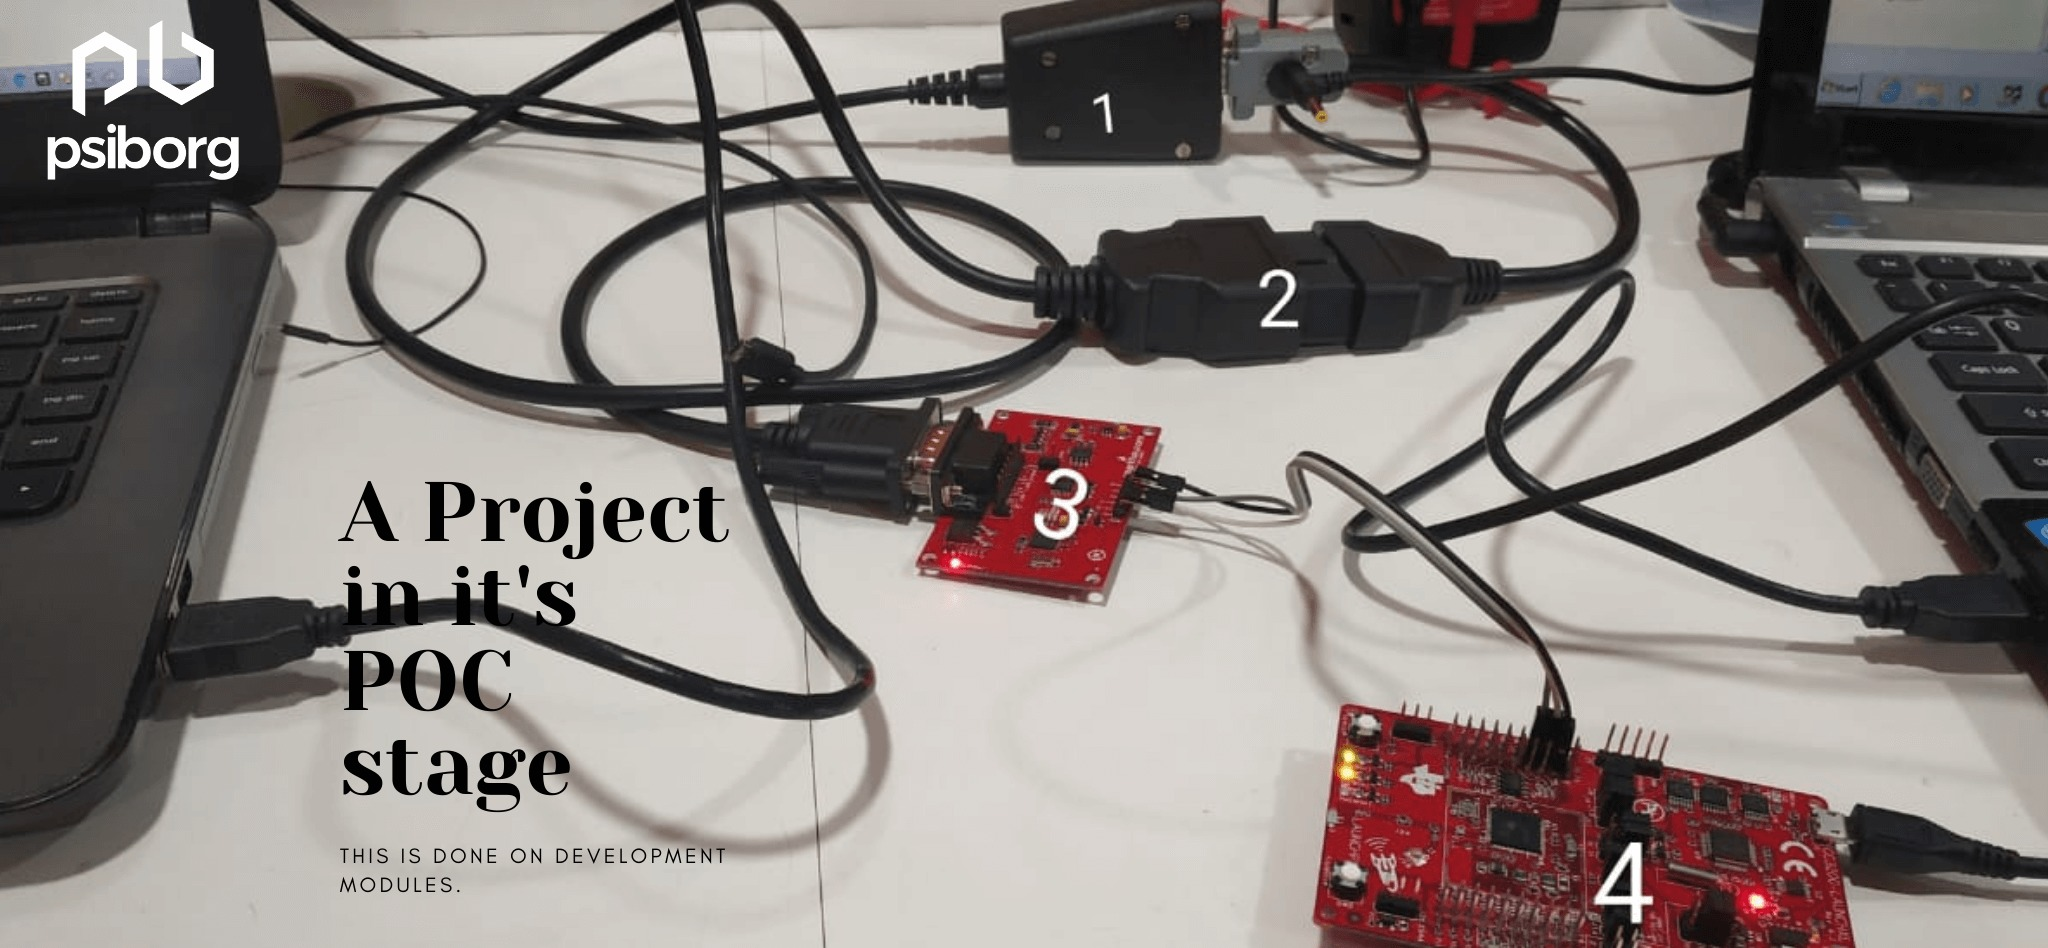 PoC- Proof of Concept in IoT prototyping